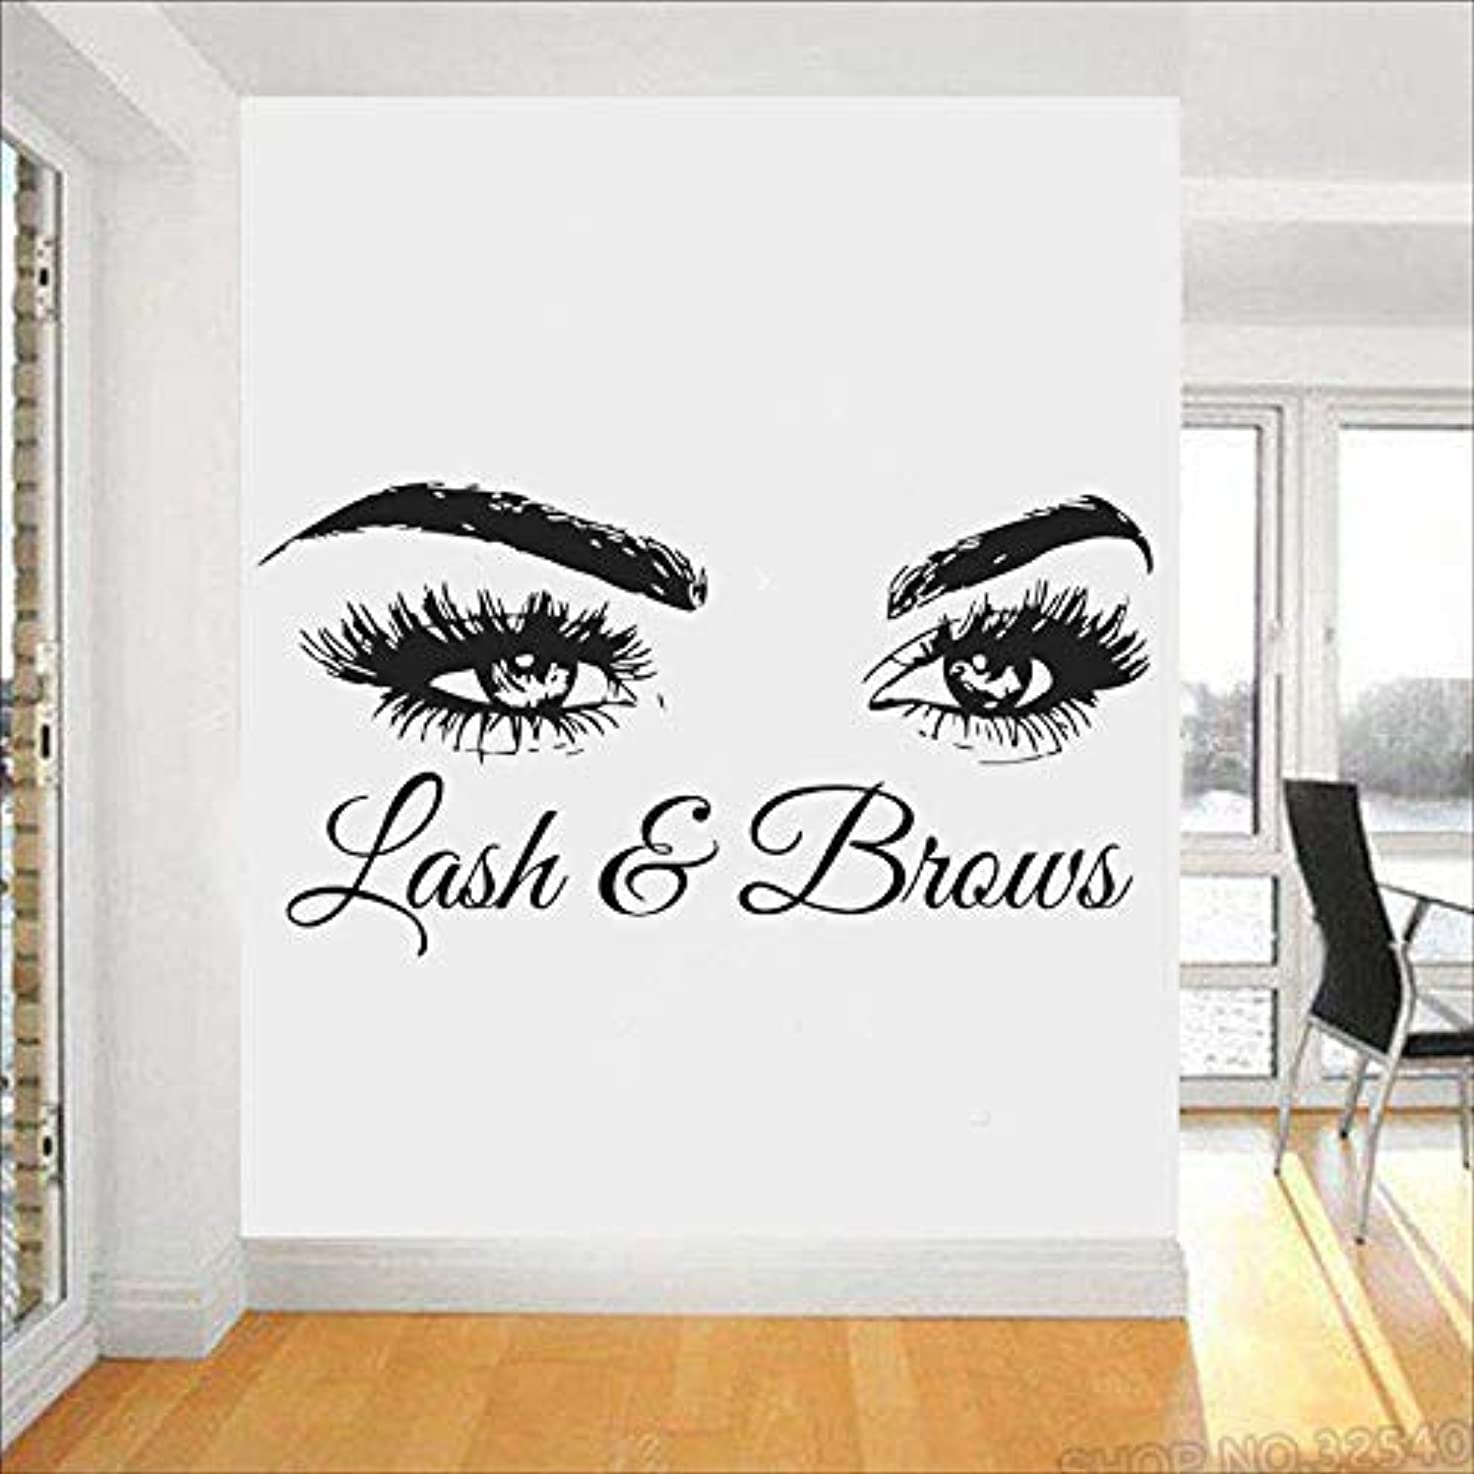 Lorraine Sweet Wall Art Mural Lashes Eyelashes Home Decor Eyebrows Brows Beauty Salon Decor Wall Decal Sticker Eye Quote Make Up Window 56 96cm